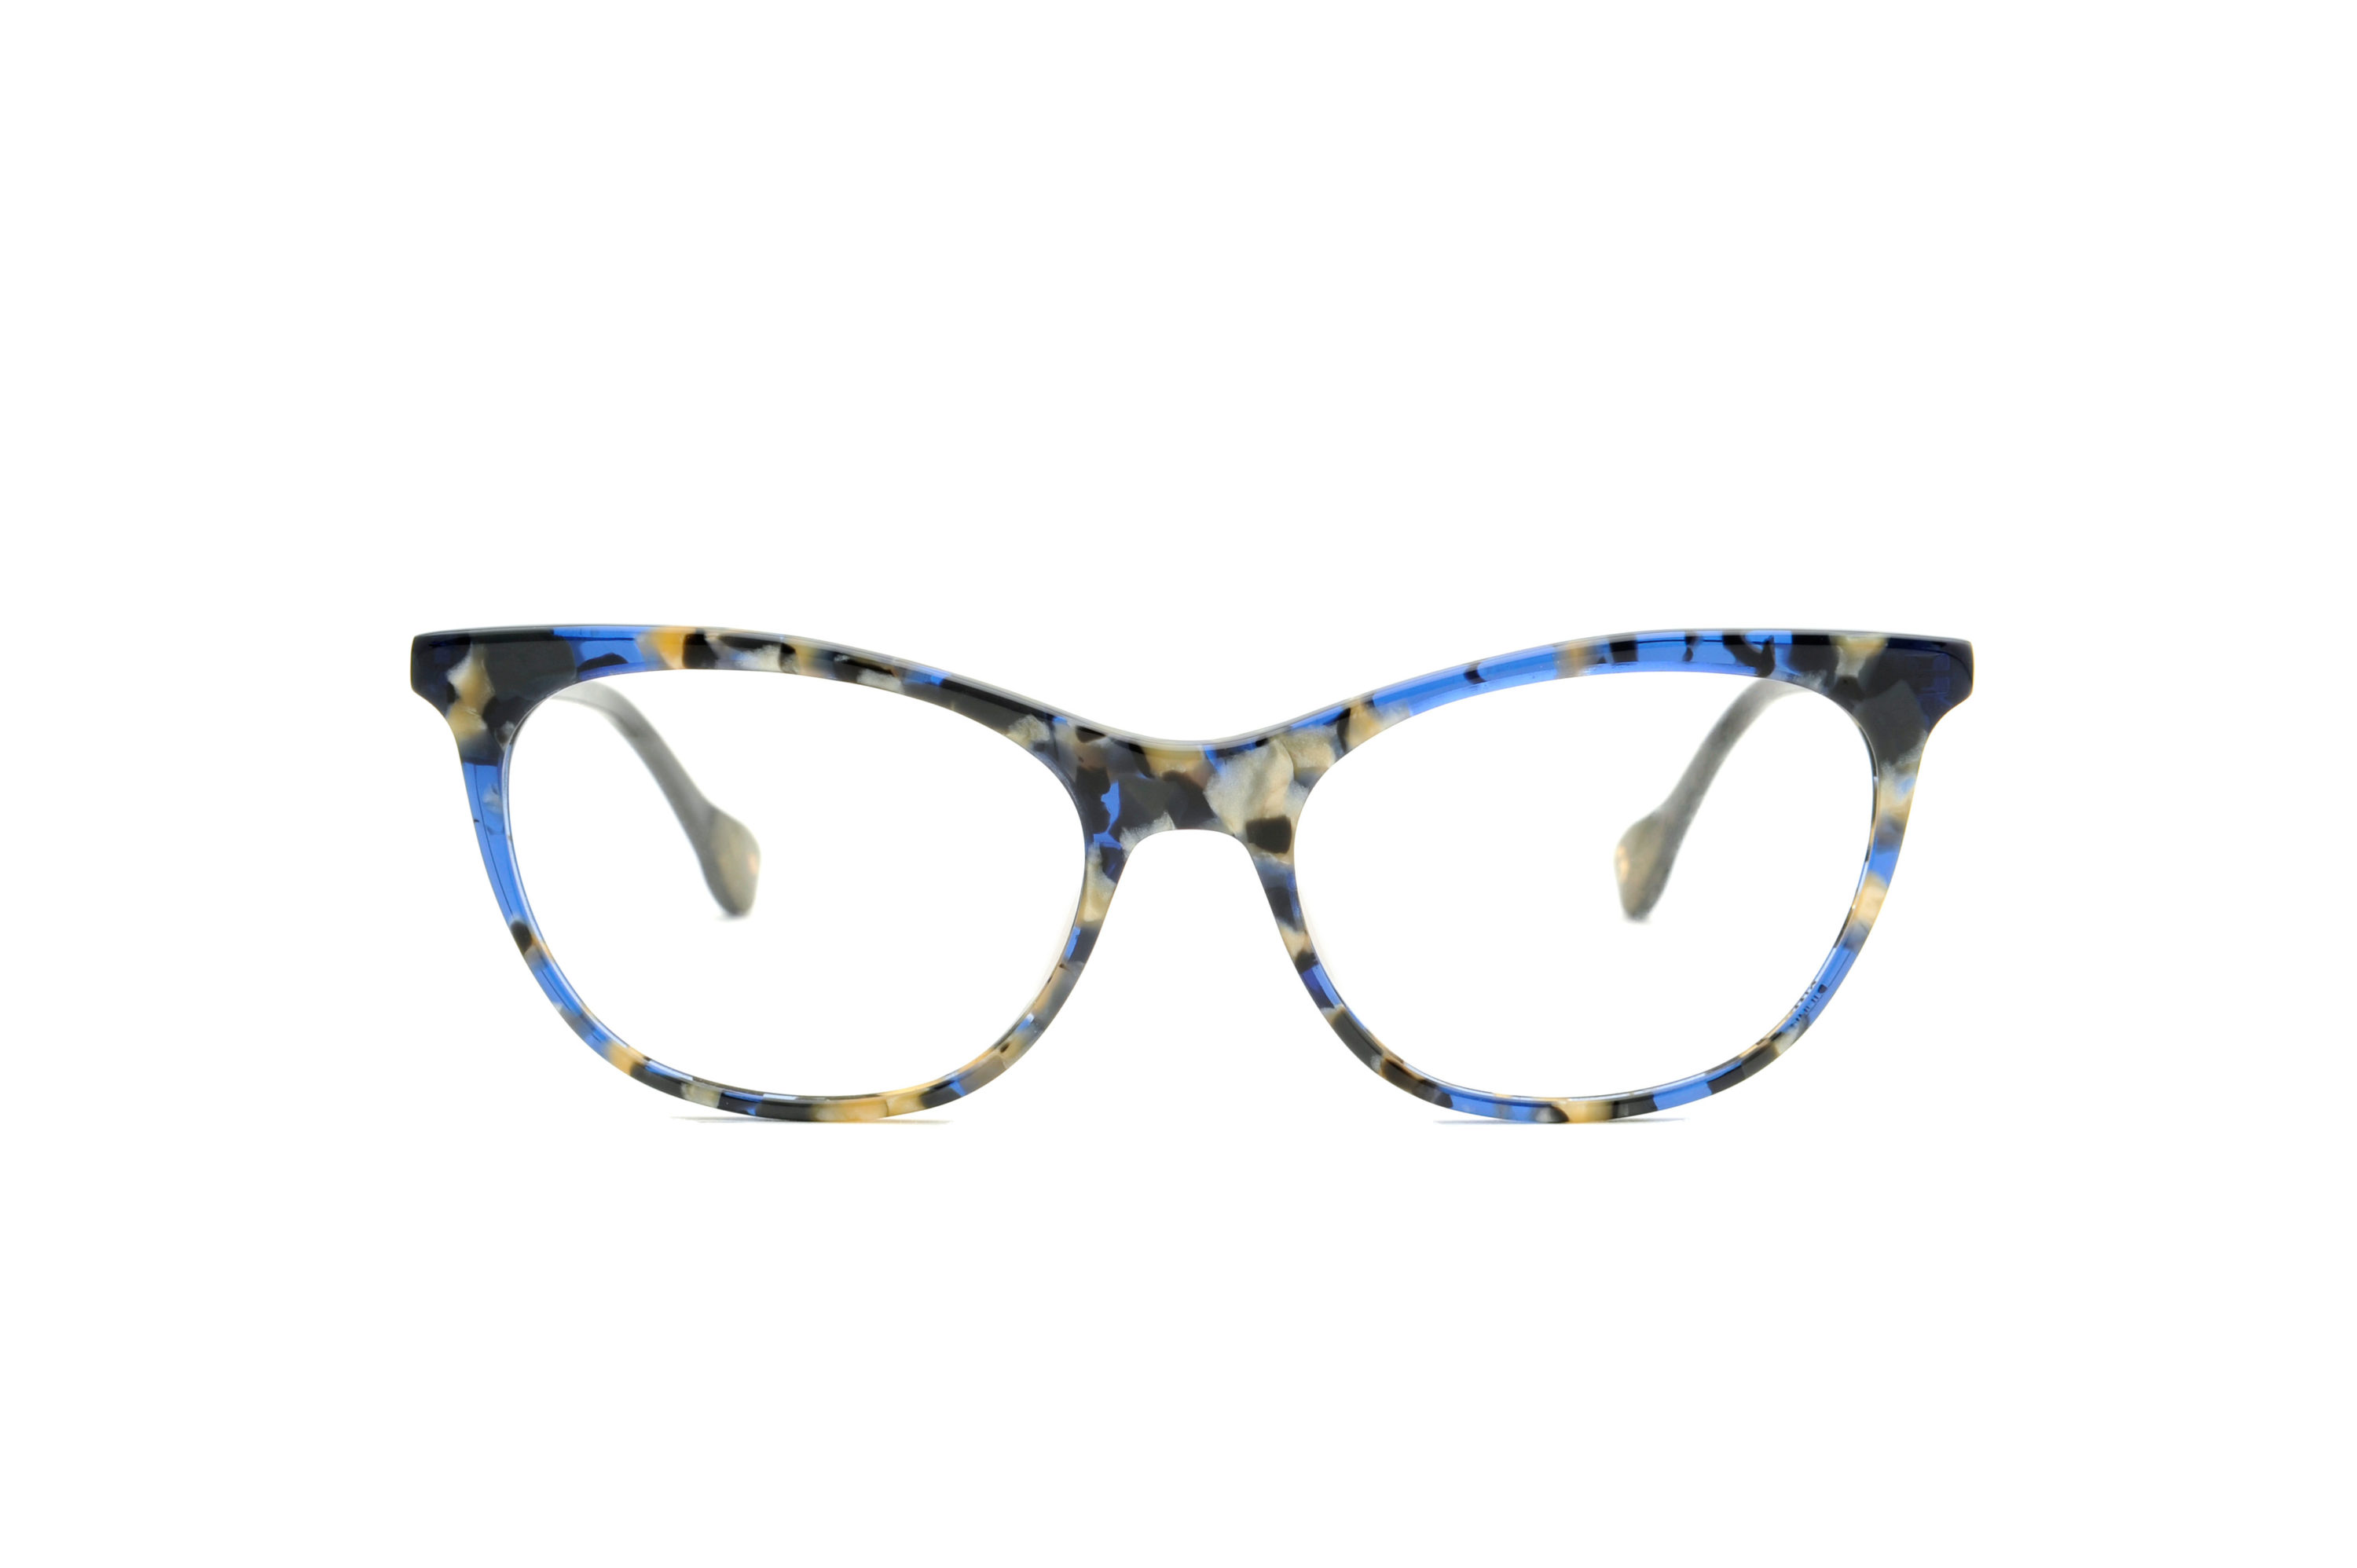 Diana acetate cat eye blue sunglasses by GIGI Studios